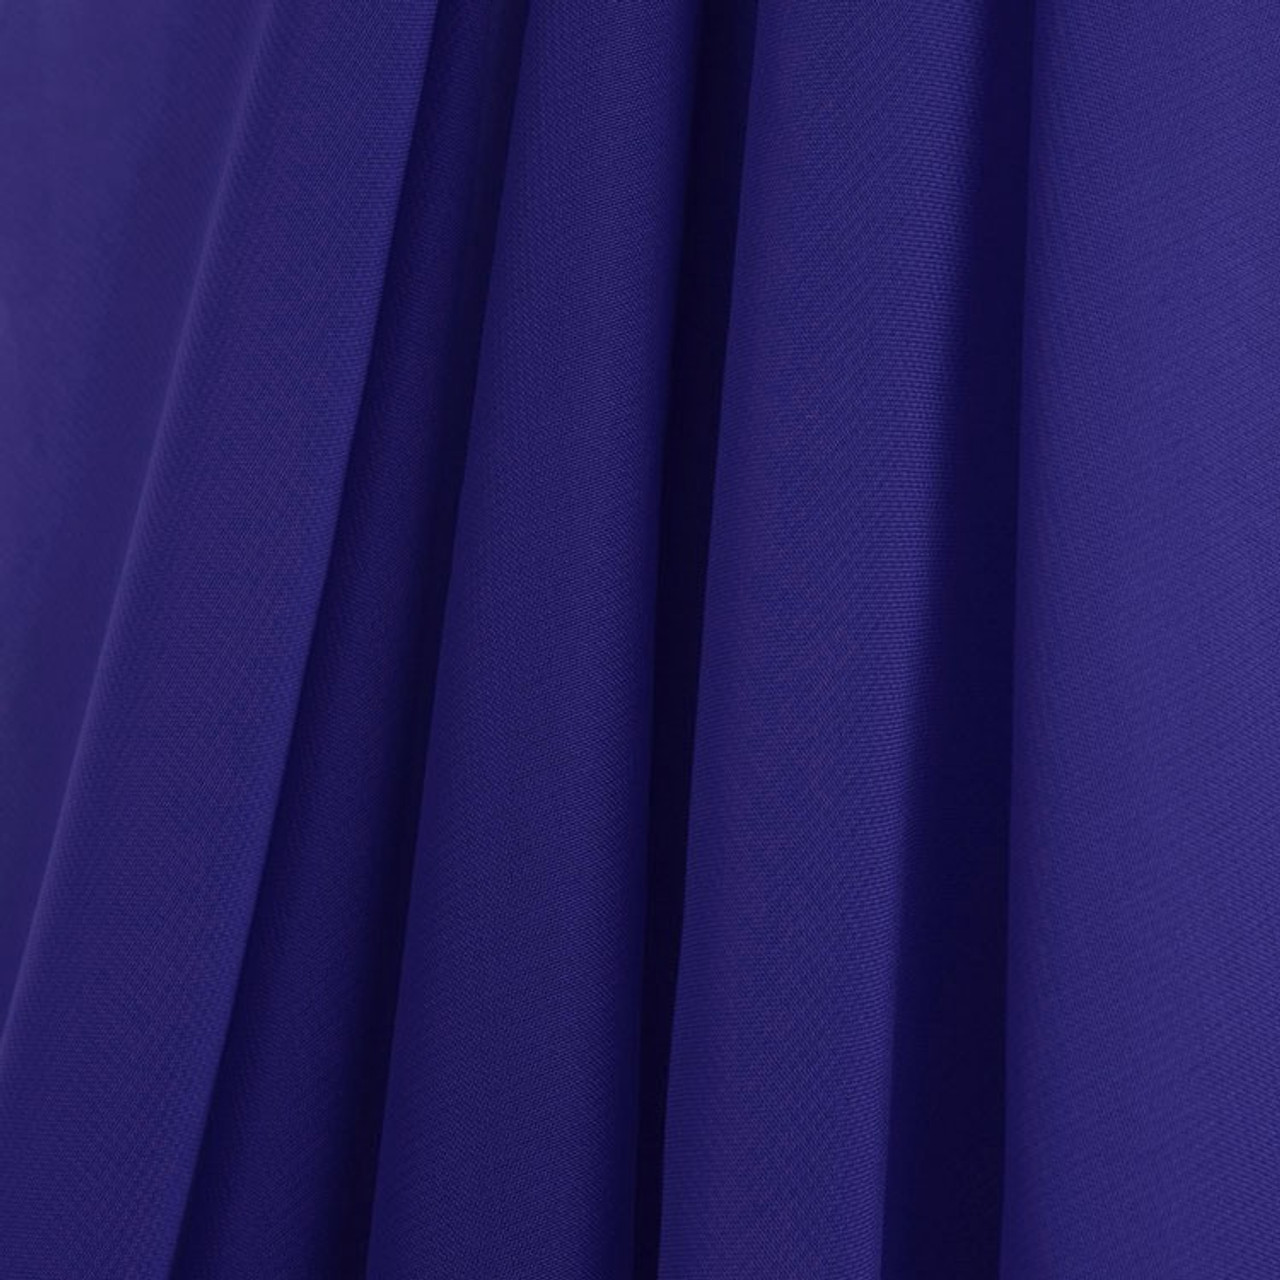 Royal Blue Chiffon Drapes Panels For Wedding Events Decor Backdrop Draping Curtains Ak Trading Co